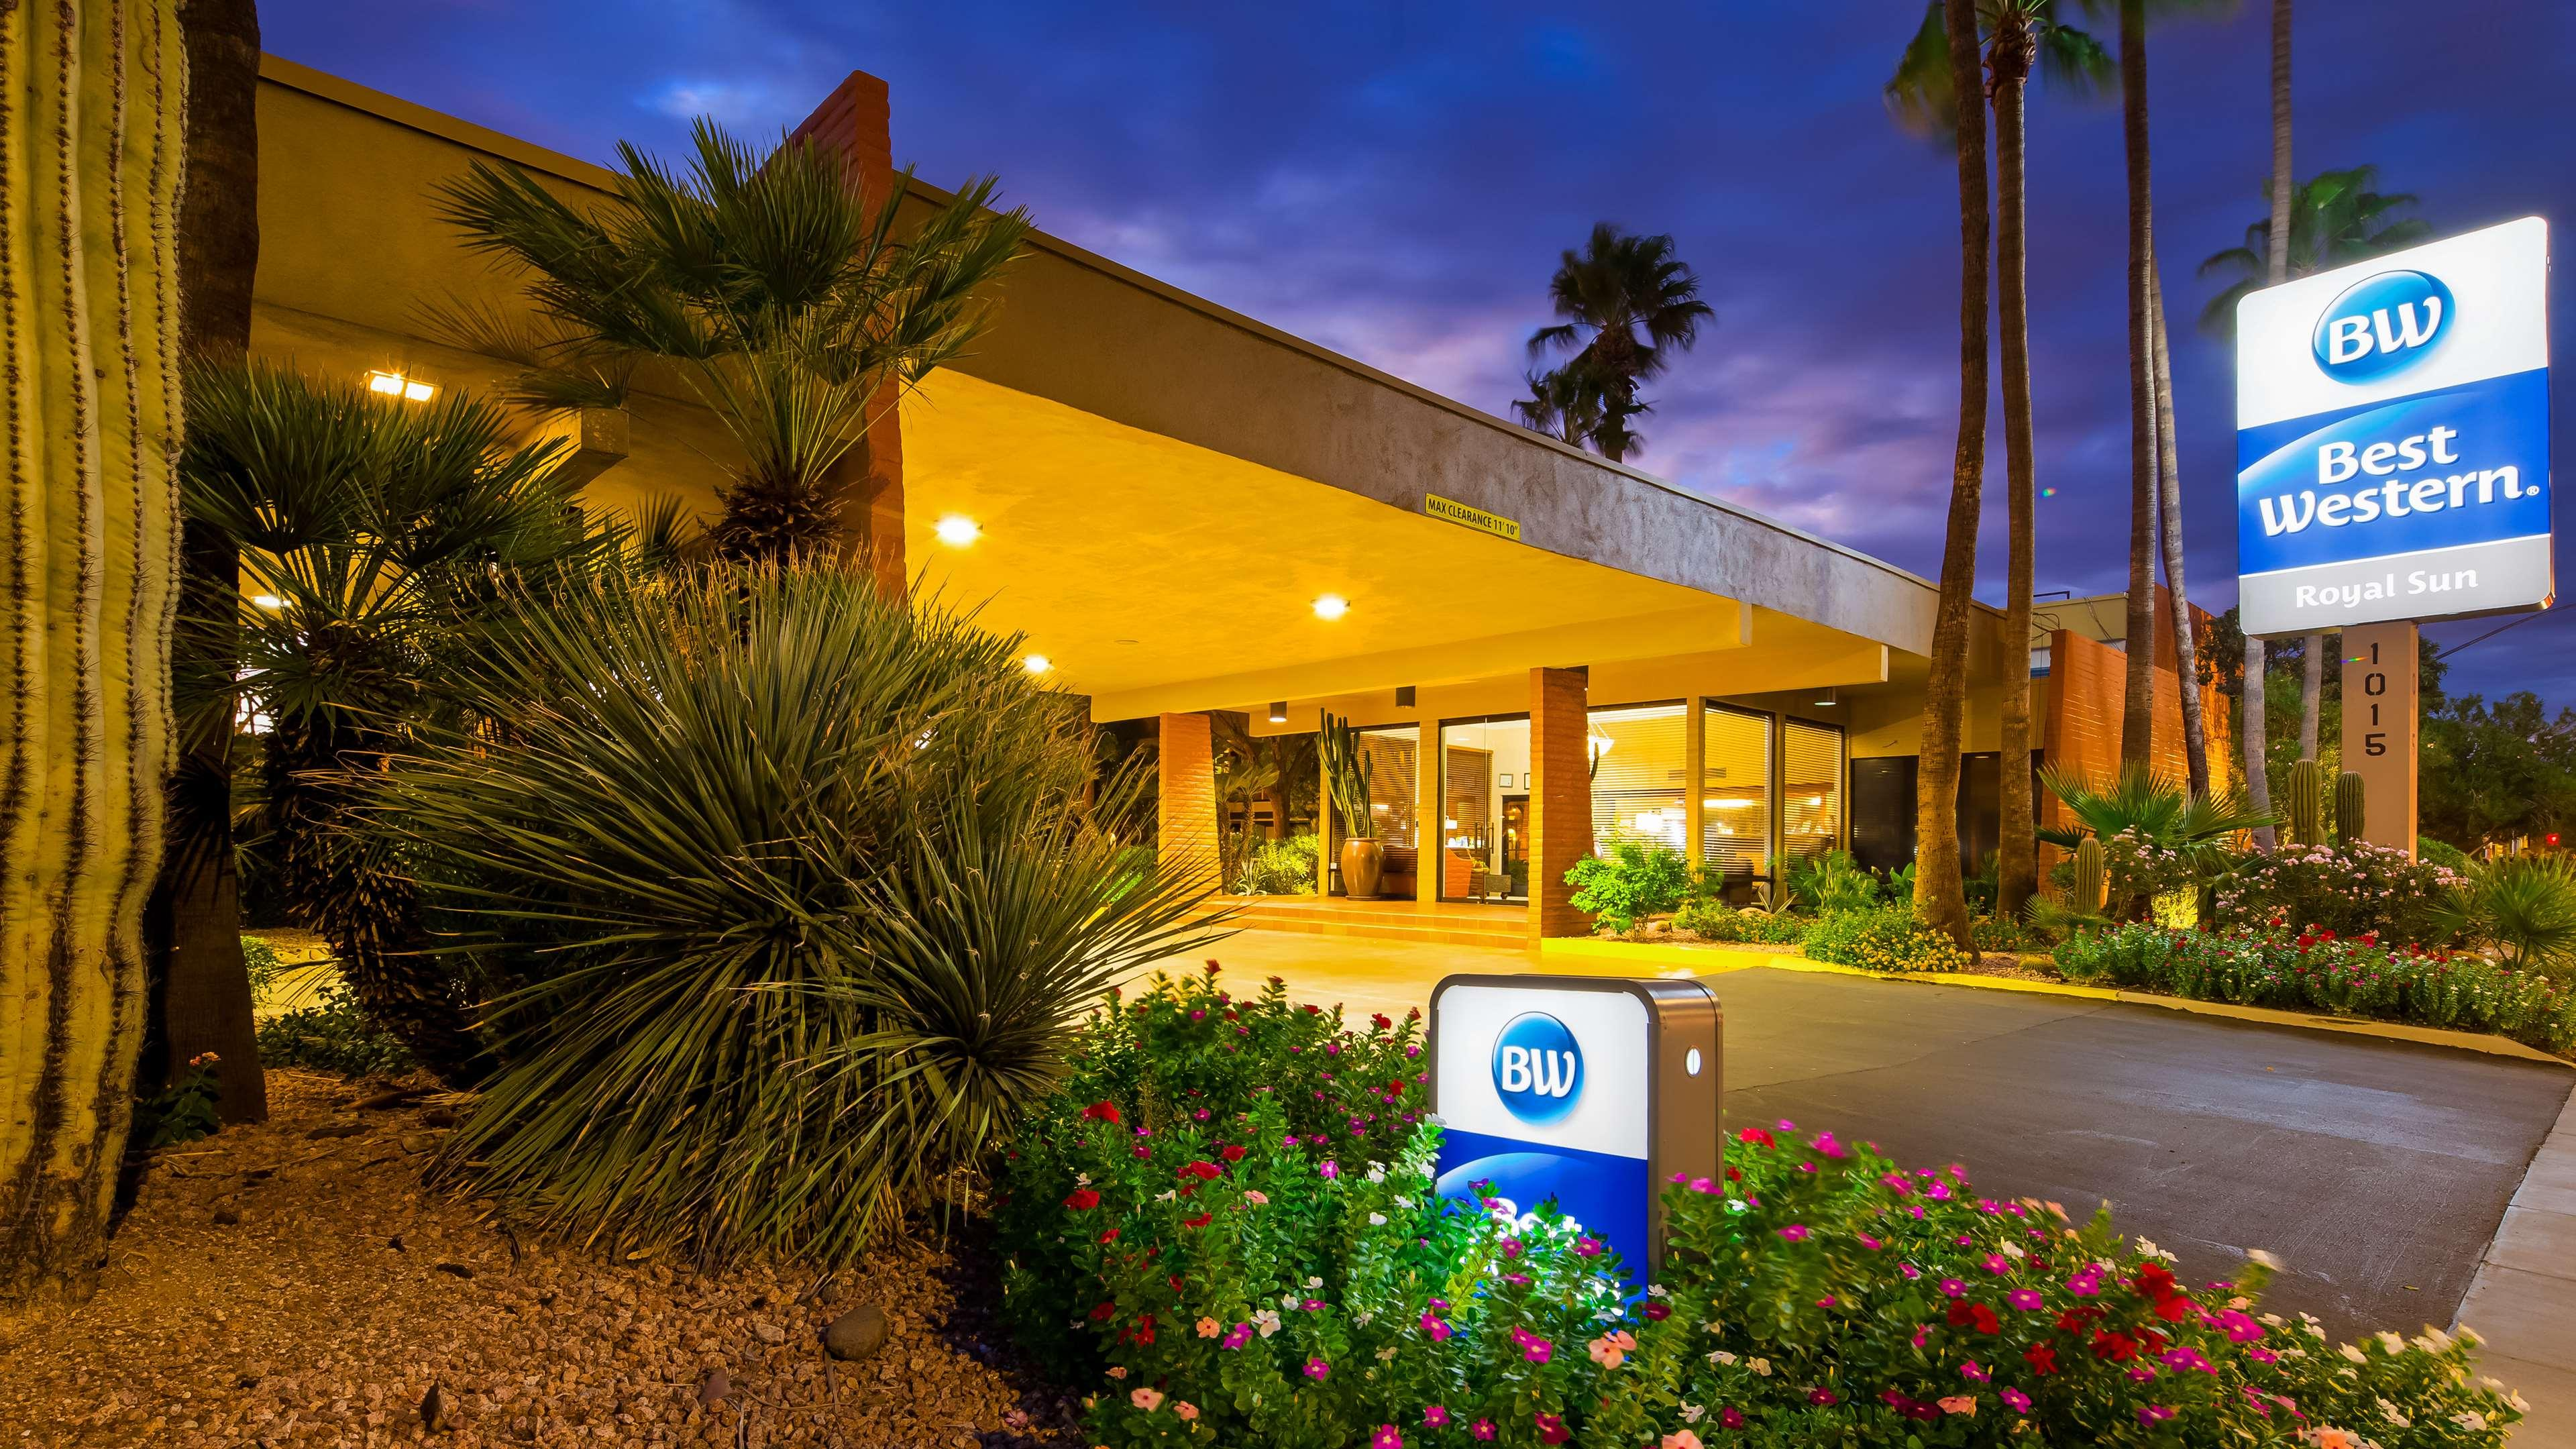 Best Western Royal Sun Inn & Suites, Pima